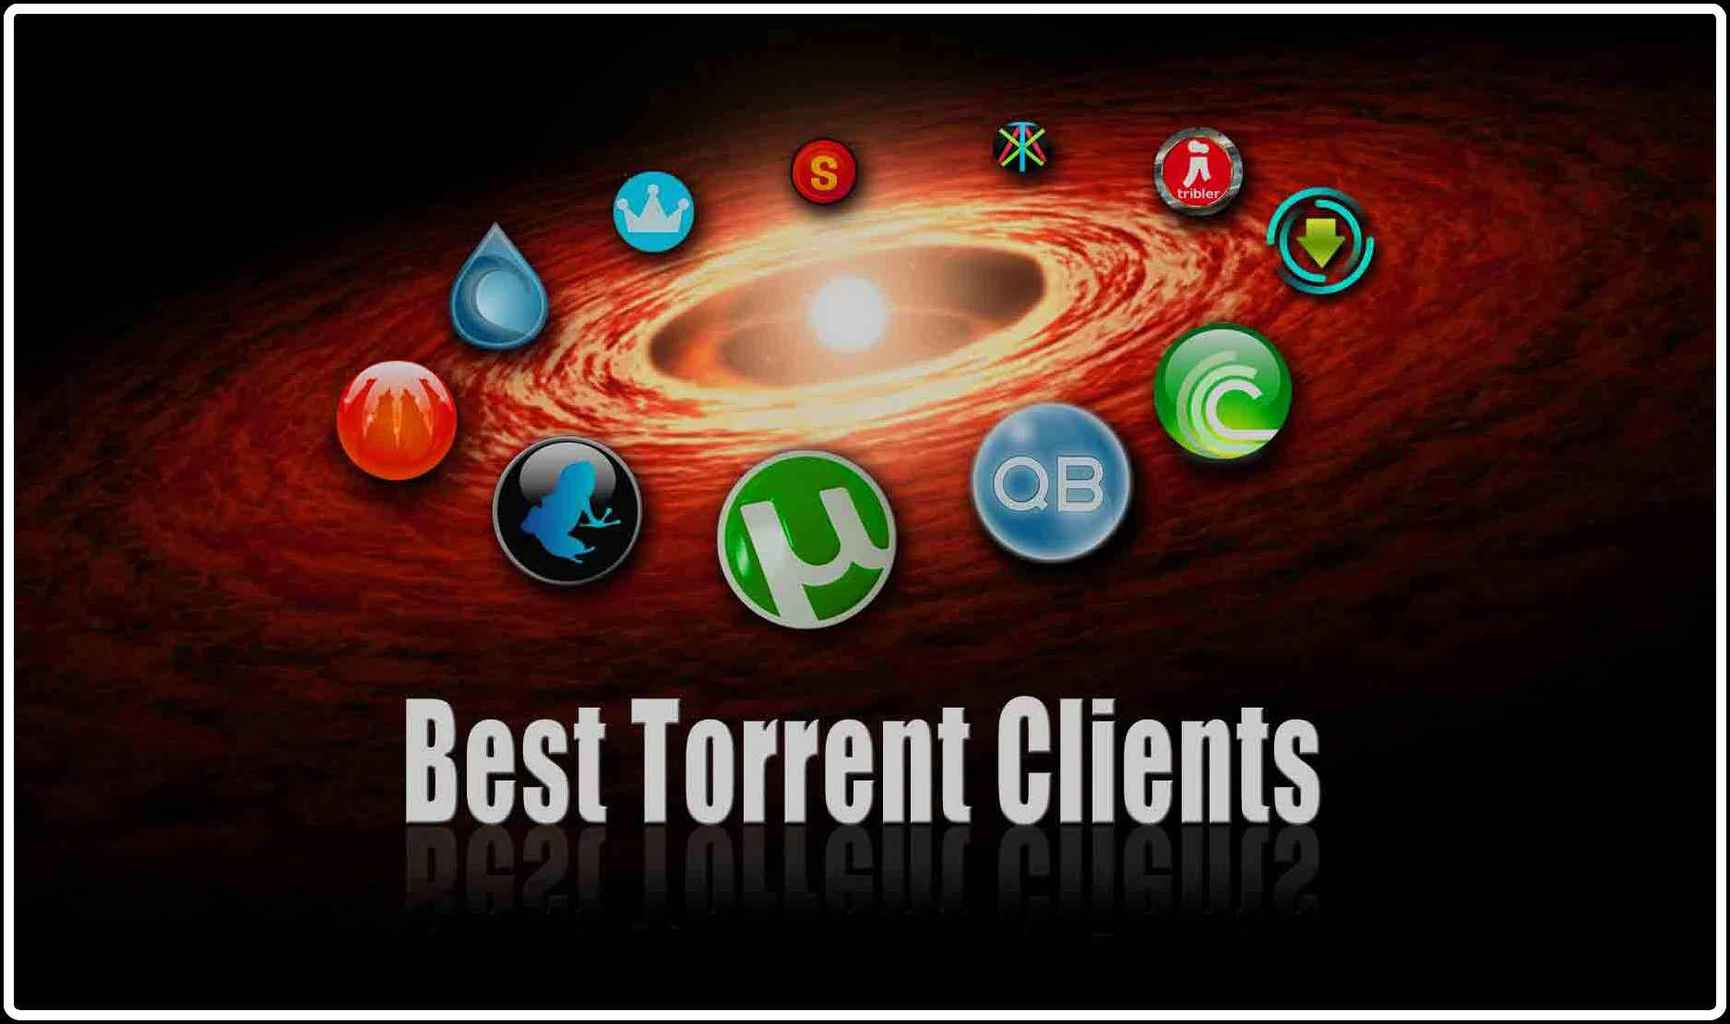 7 Best Torrent Clients 2016 for faster torrent download